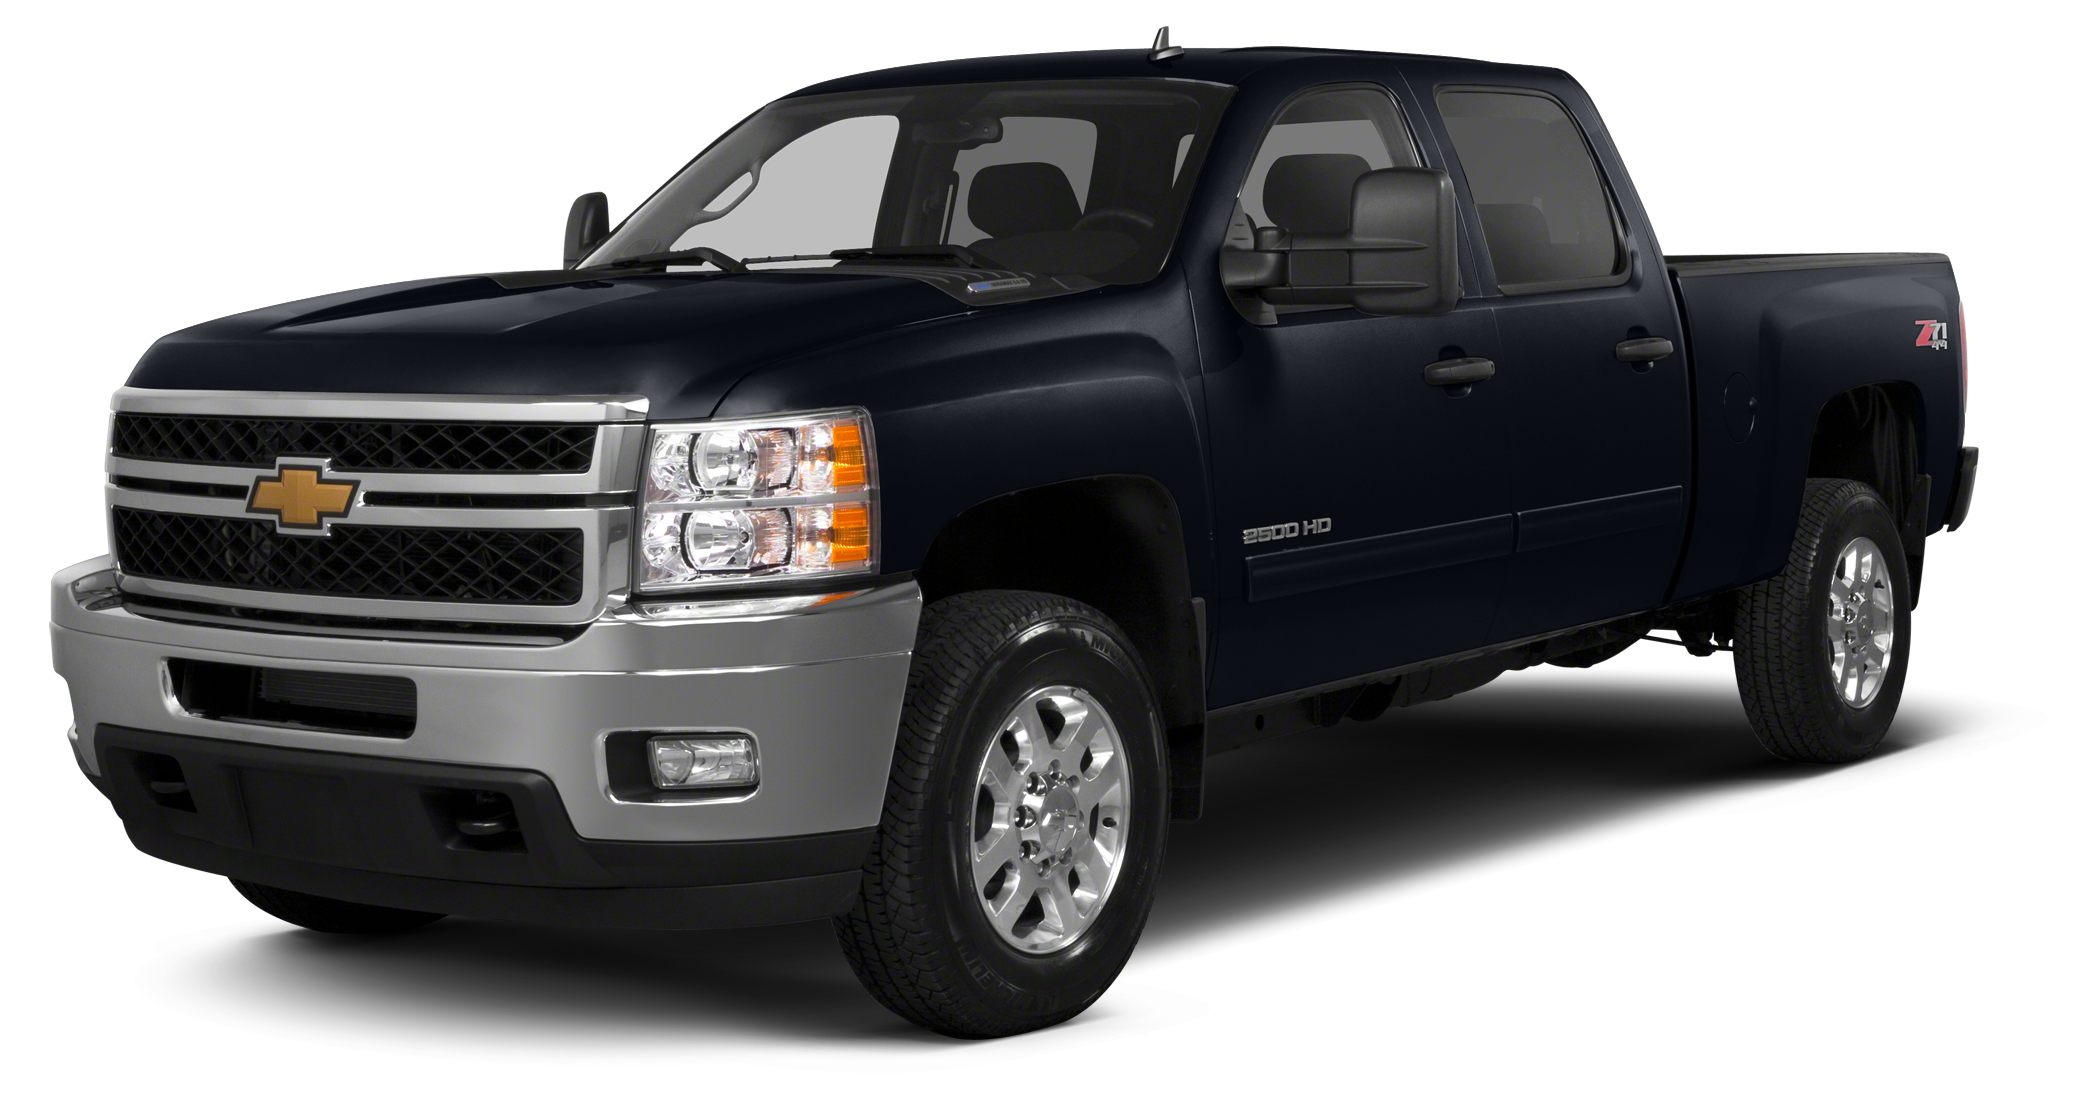 2013 Chevrolet Silverado 2500HD LT Excellent Condition CARFAX 1-Owner LOW MILES - 31750 PRICED